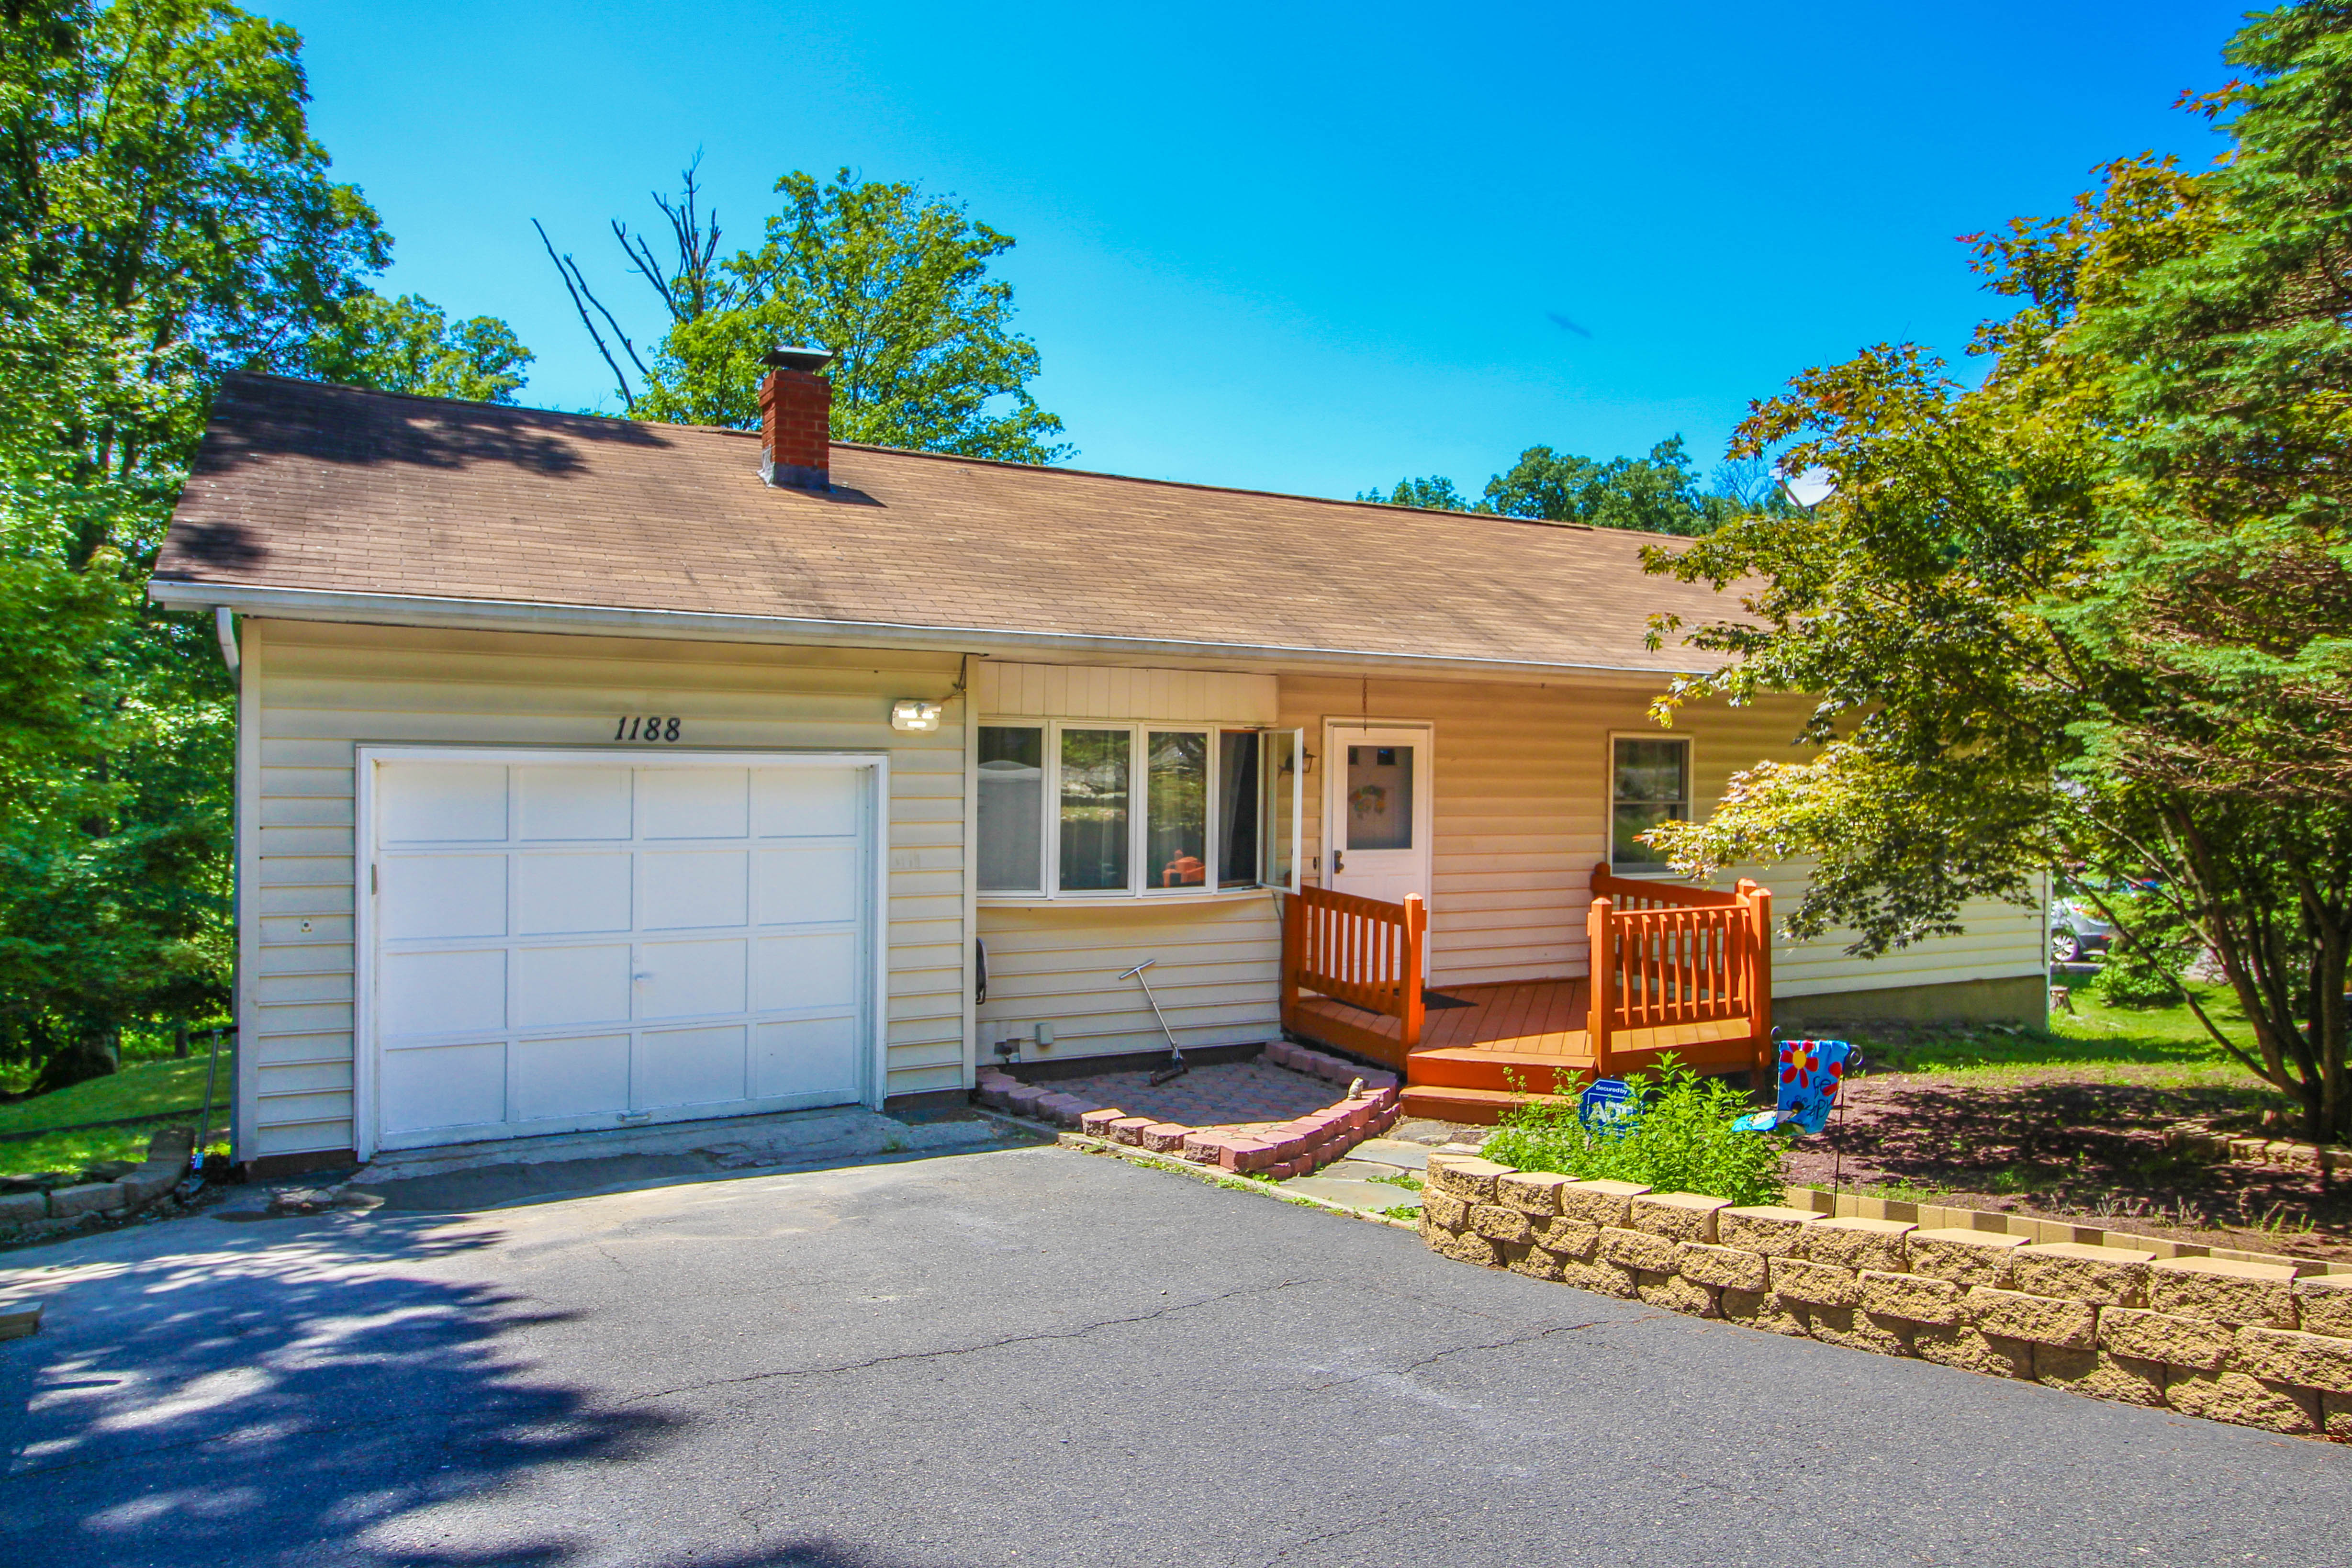 Bushkill Home For Sale Just Listed in Pine Ridge!